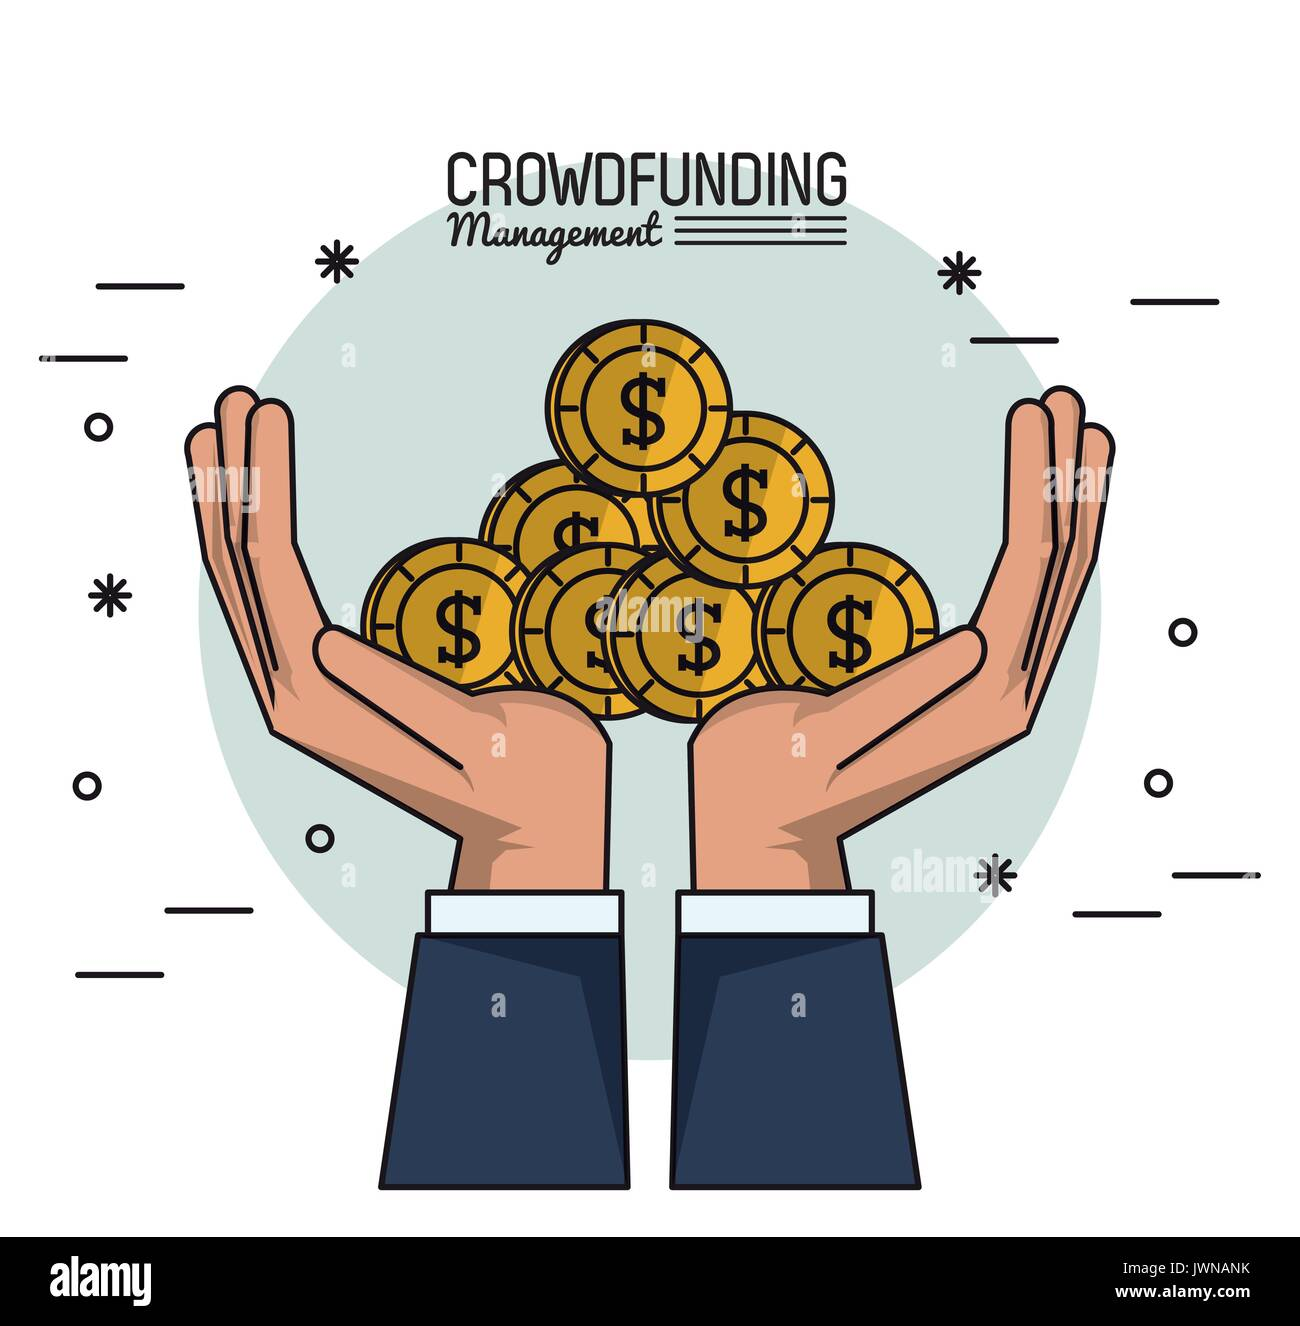 colorful poster of crowd funding management of hands with many coins - Stock Image